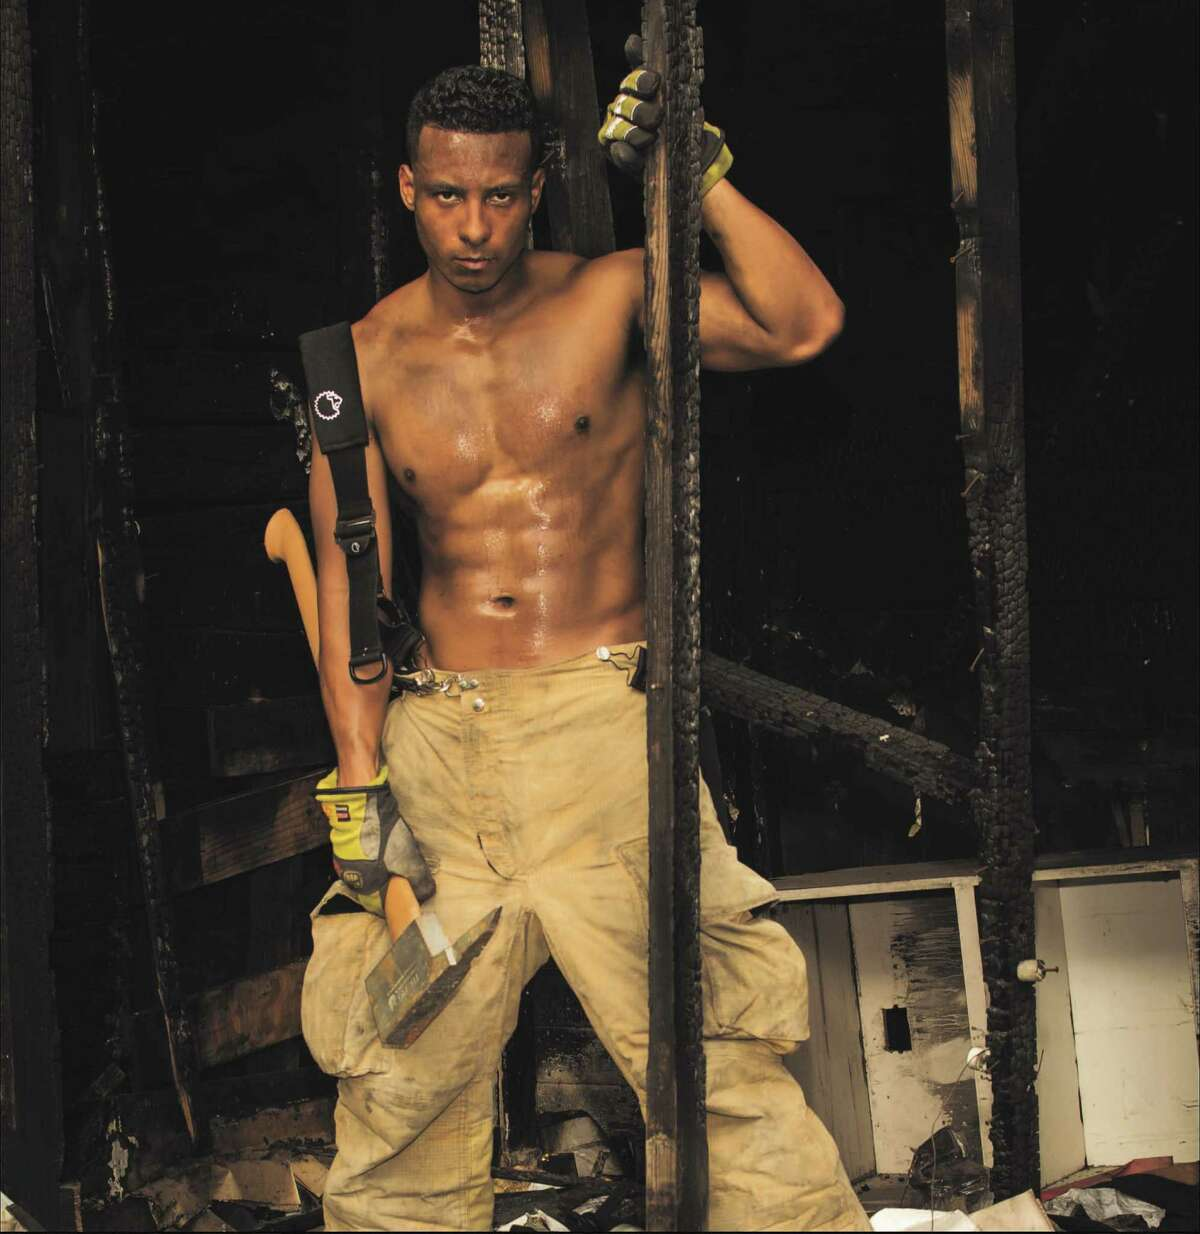 Medical Center resident Shawn Morris is a model in the Houston Fire Fighters Burned Children's Fund 2016 Calendar.